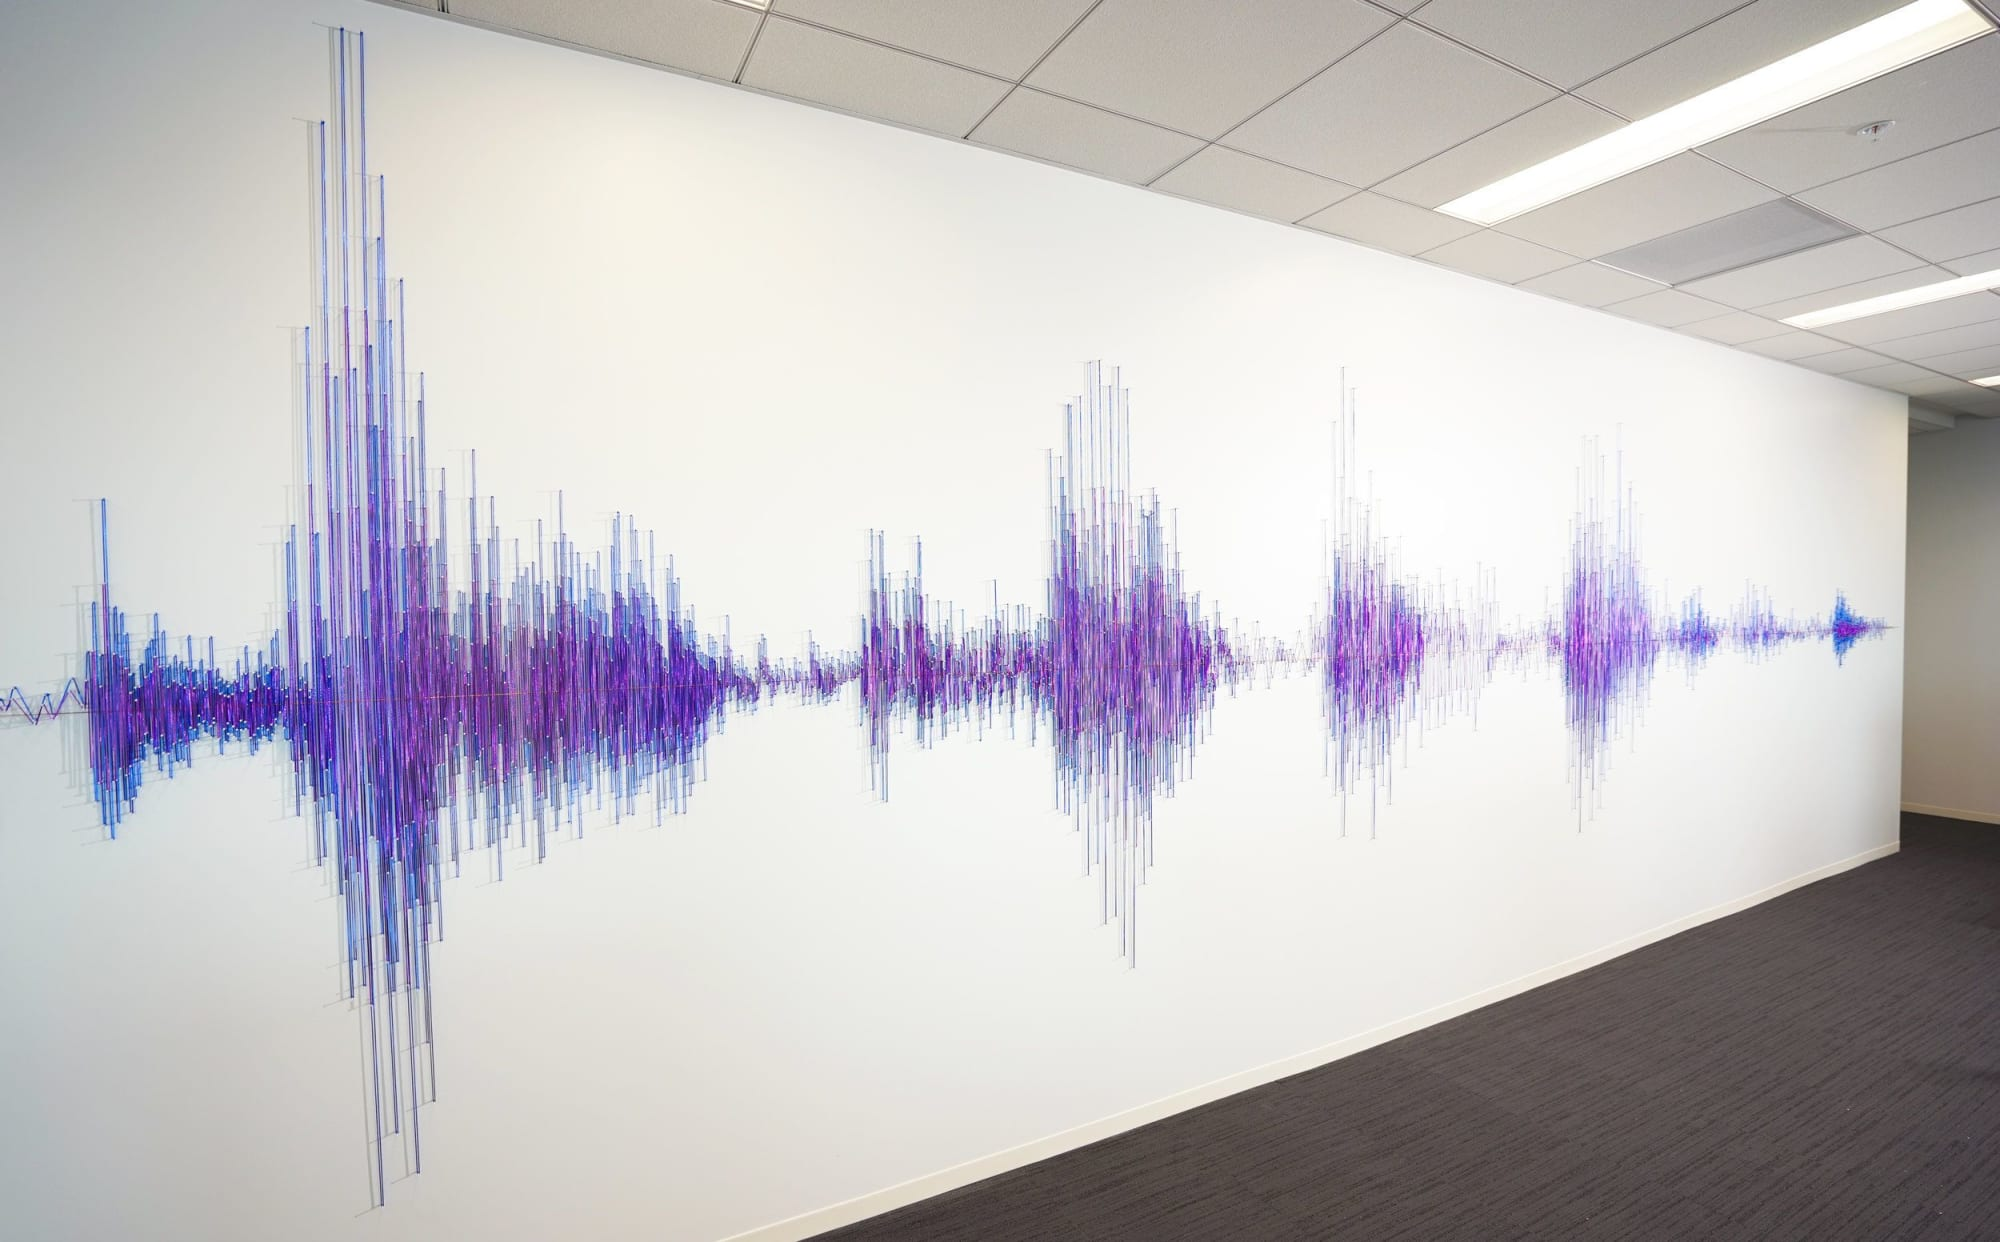 Fiber Sound Wave Wall Treatment in Blue and Purple